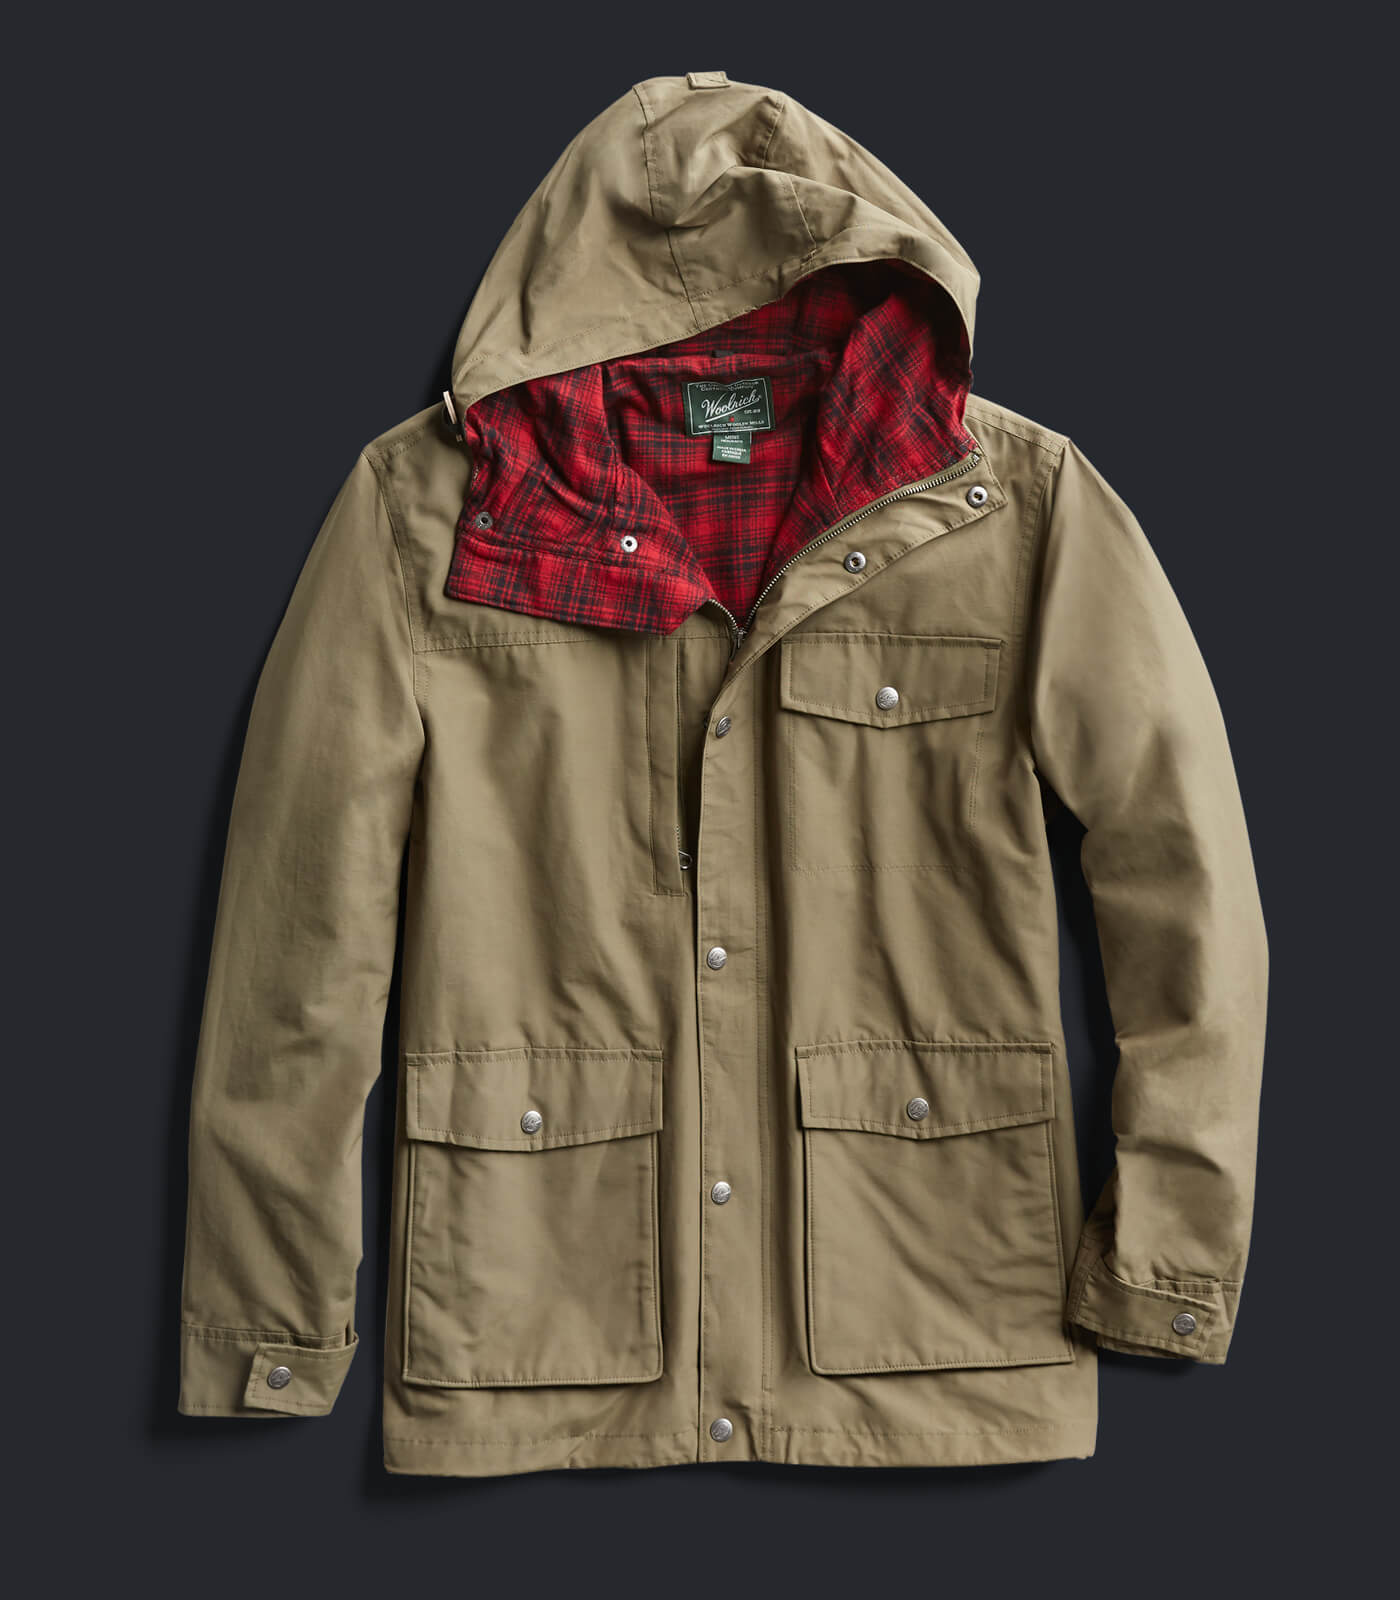 Stitch Fix Men's Outerwear Guide